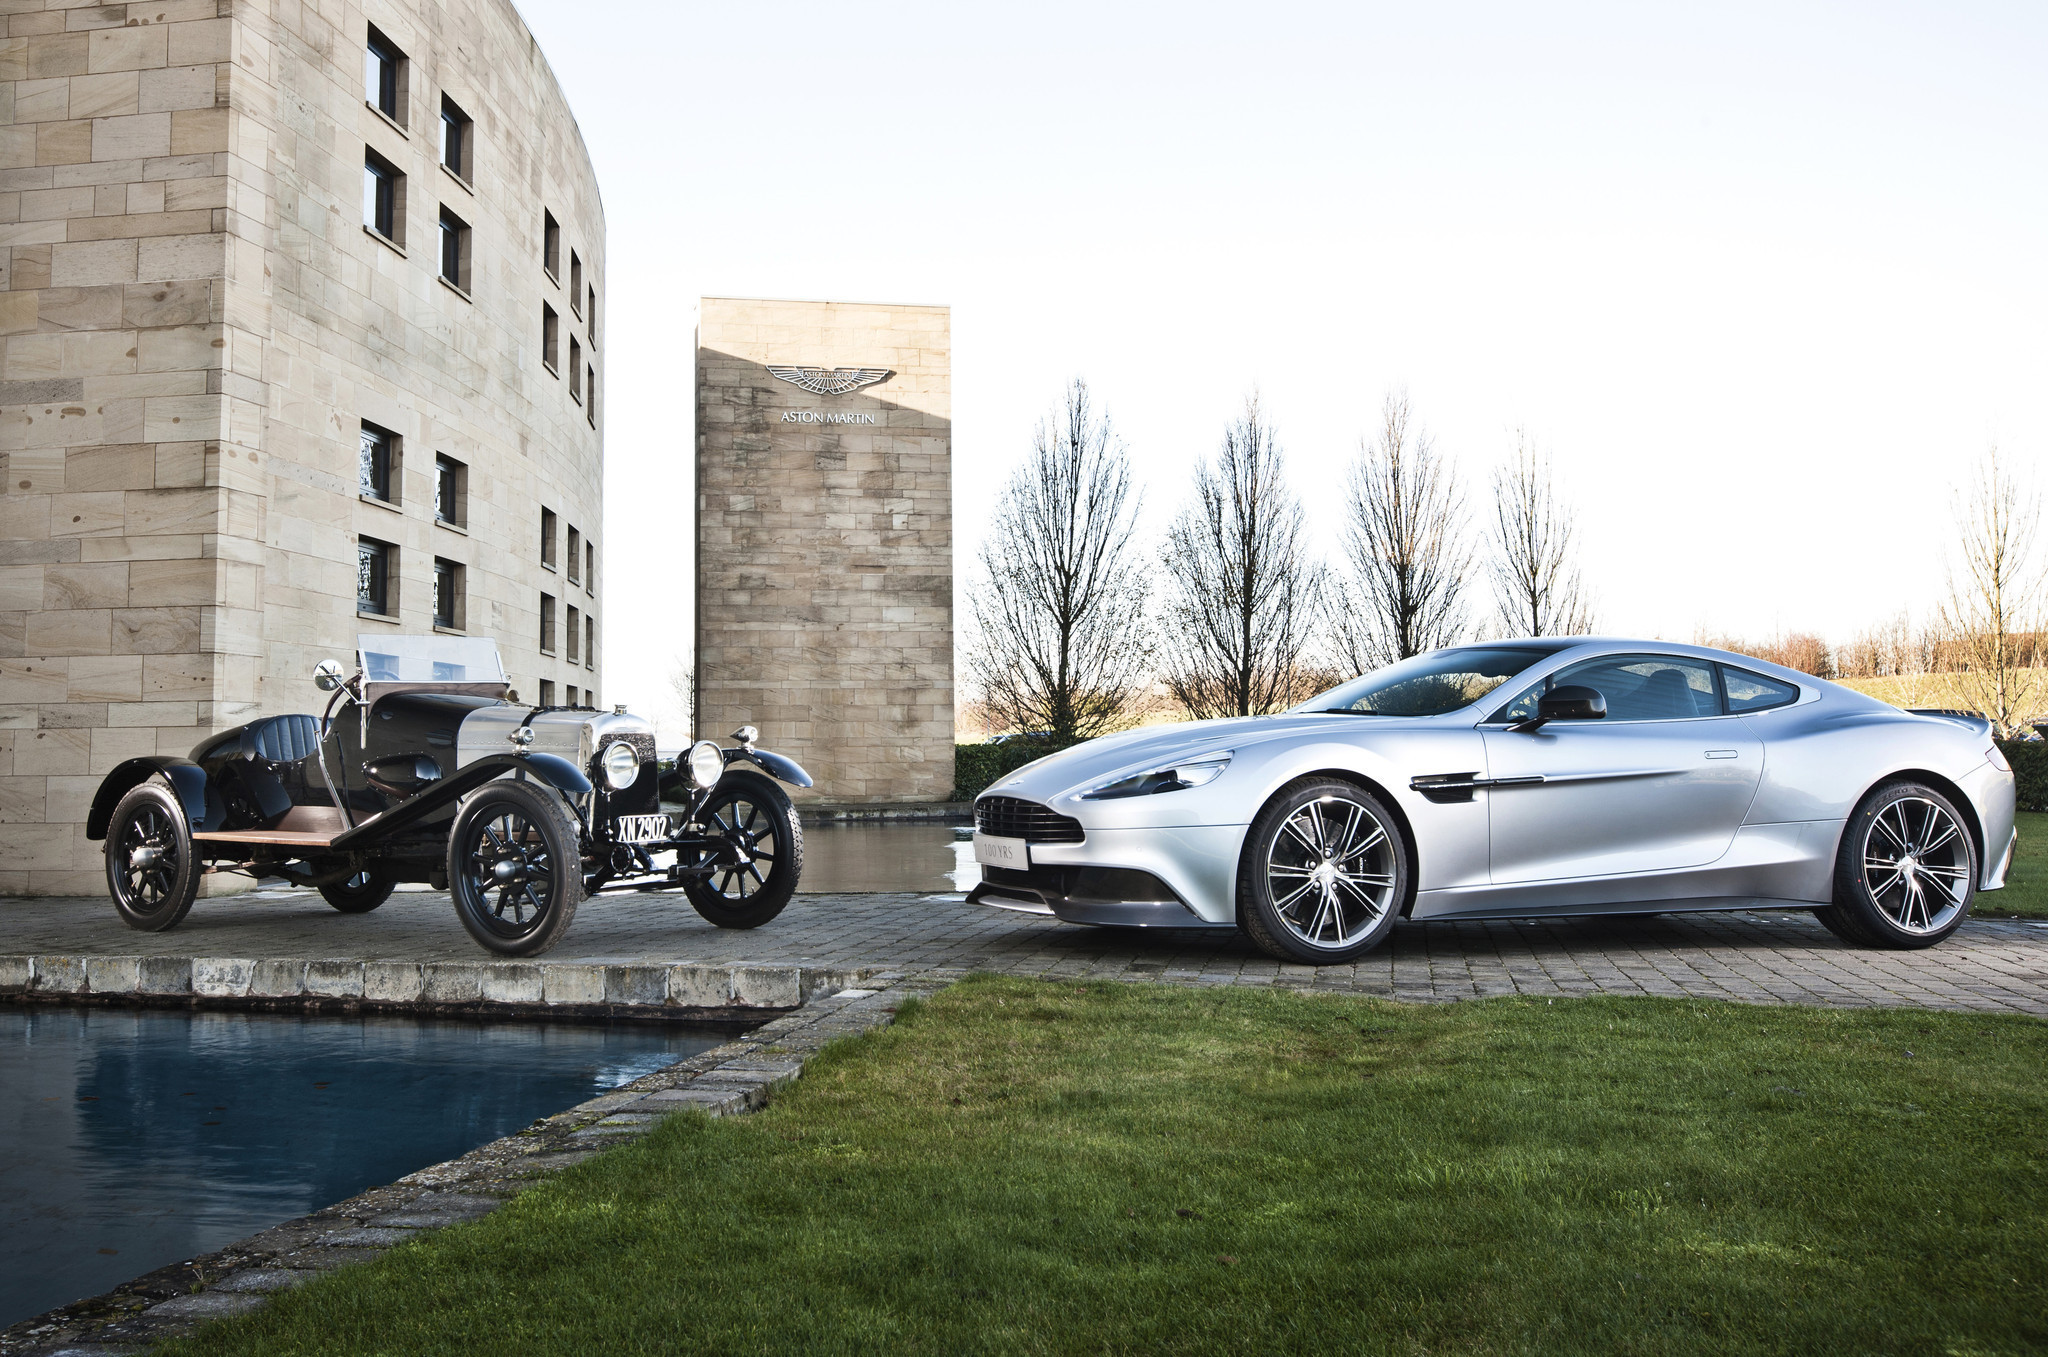 100 years of Aston Martin: What to expect next